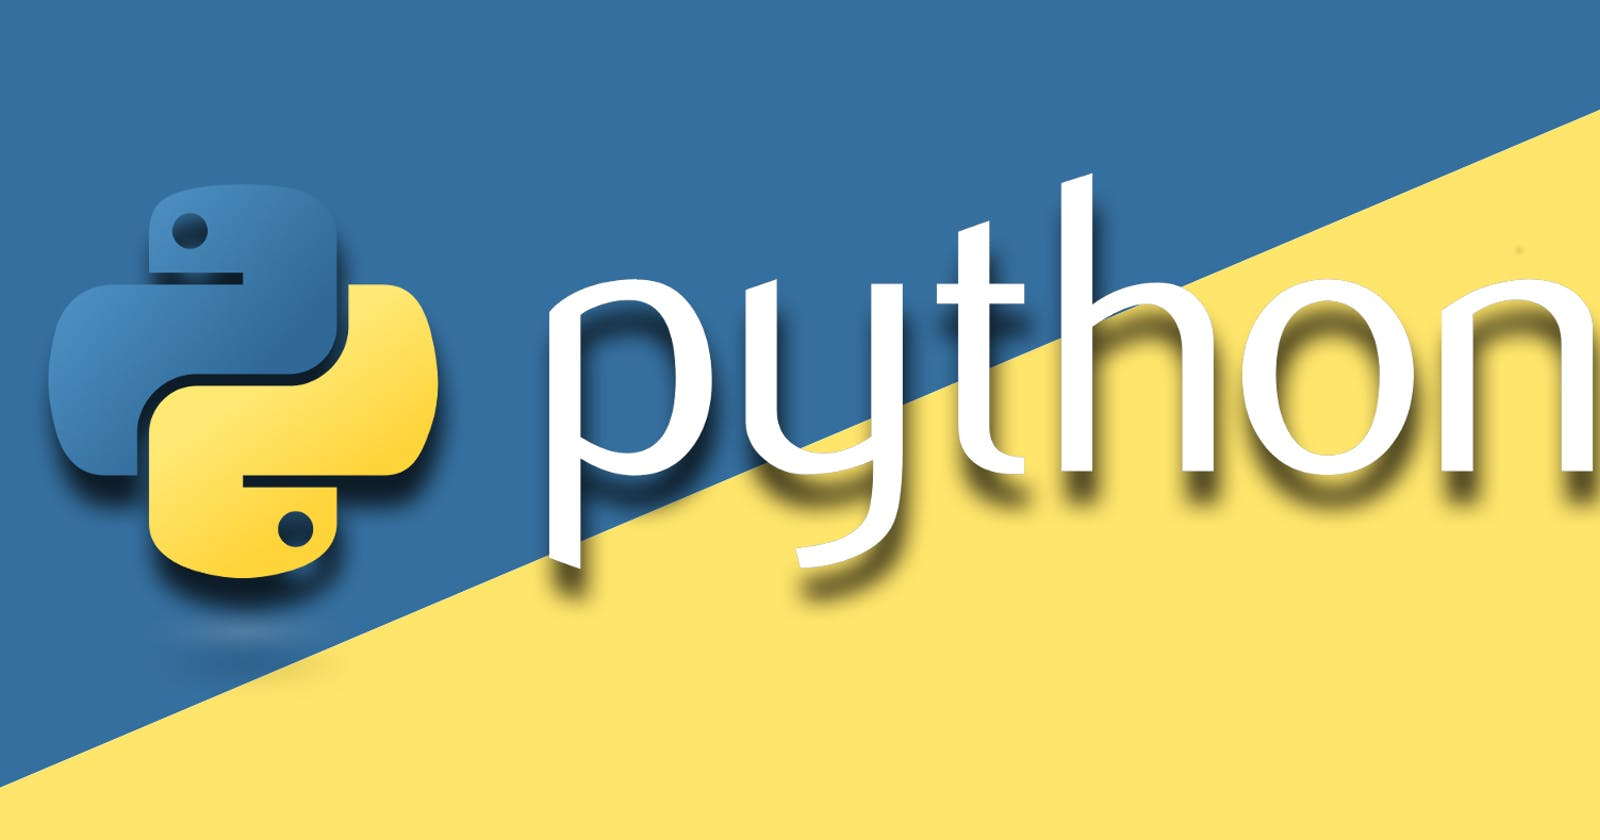 Working with Lists & Dictionaries in Python